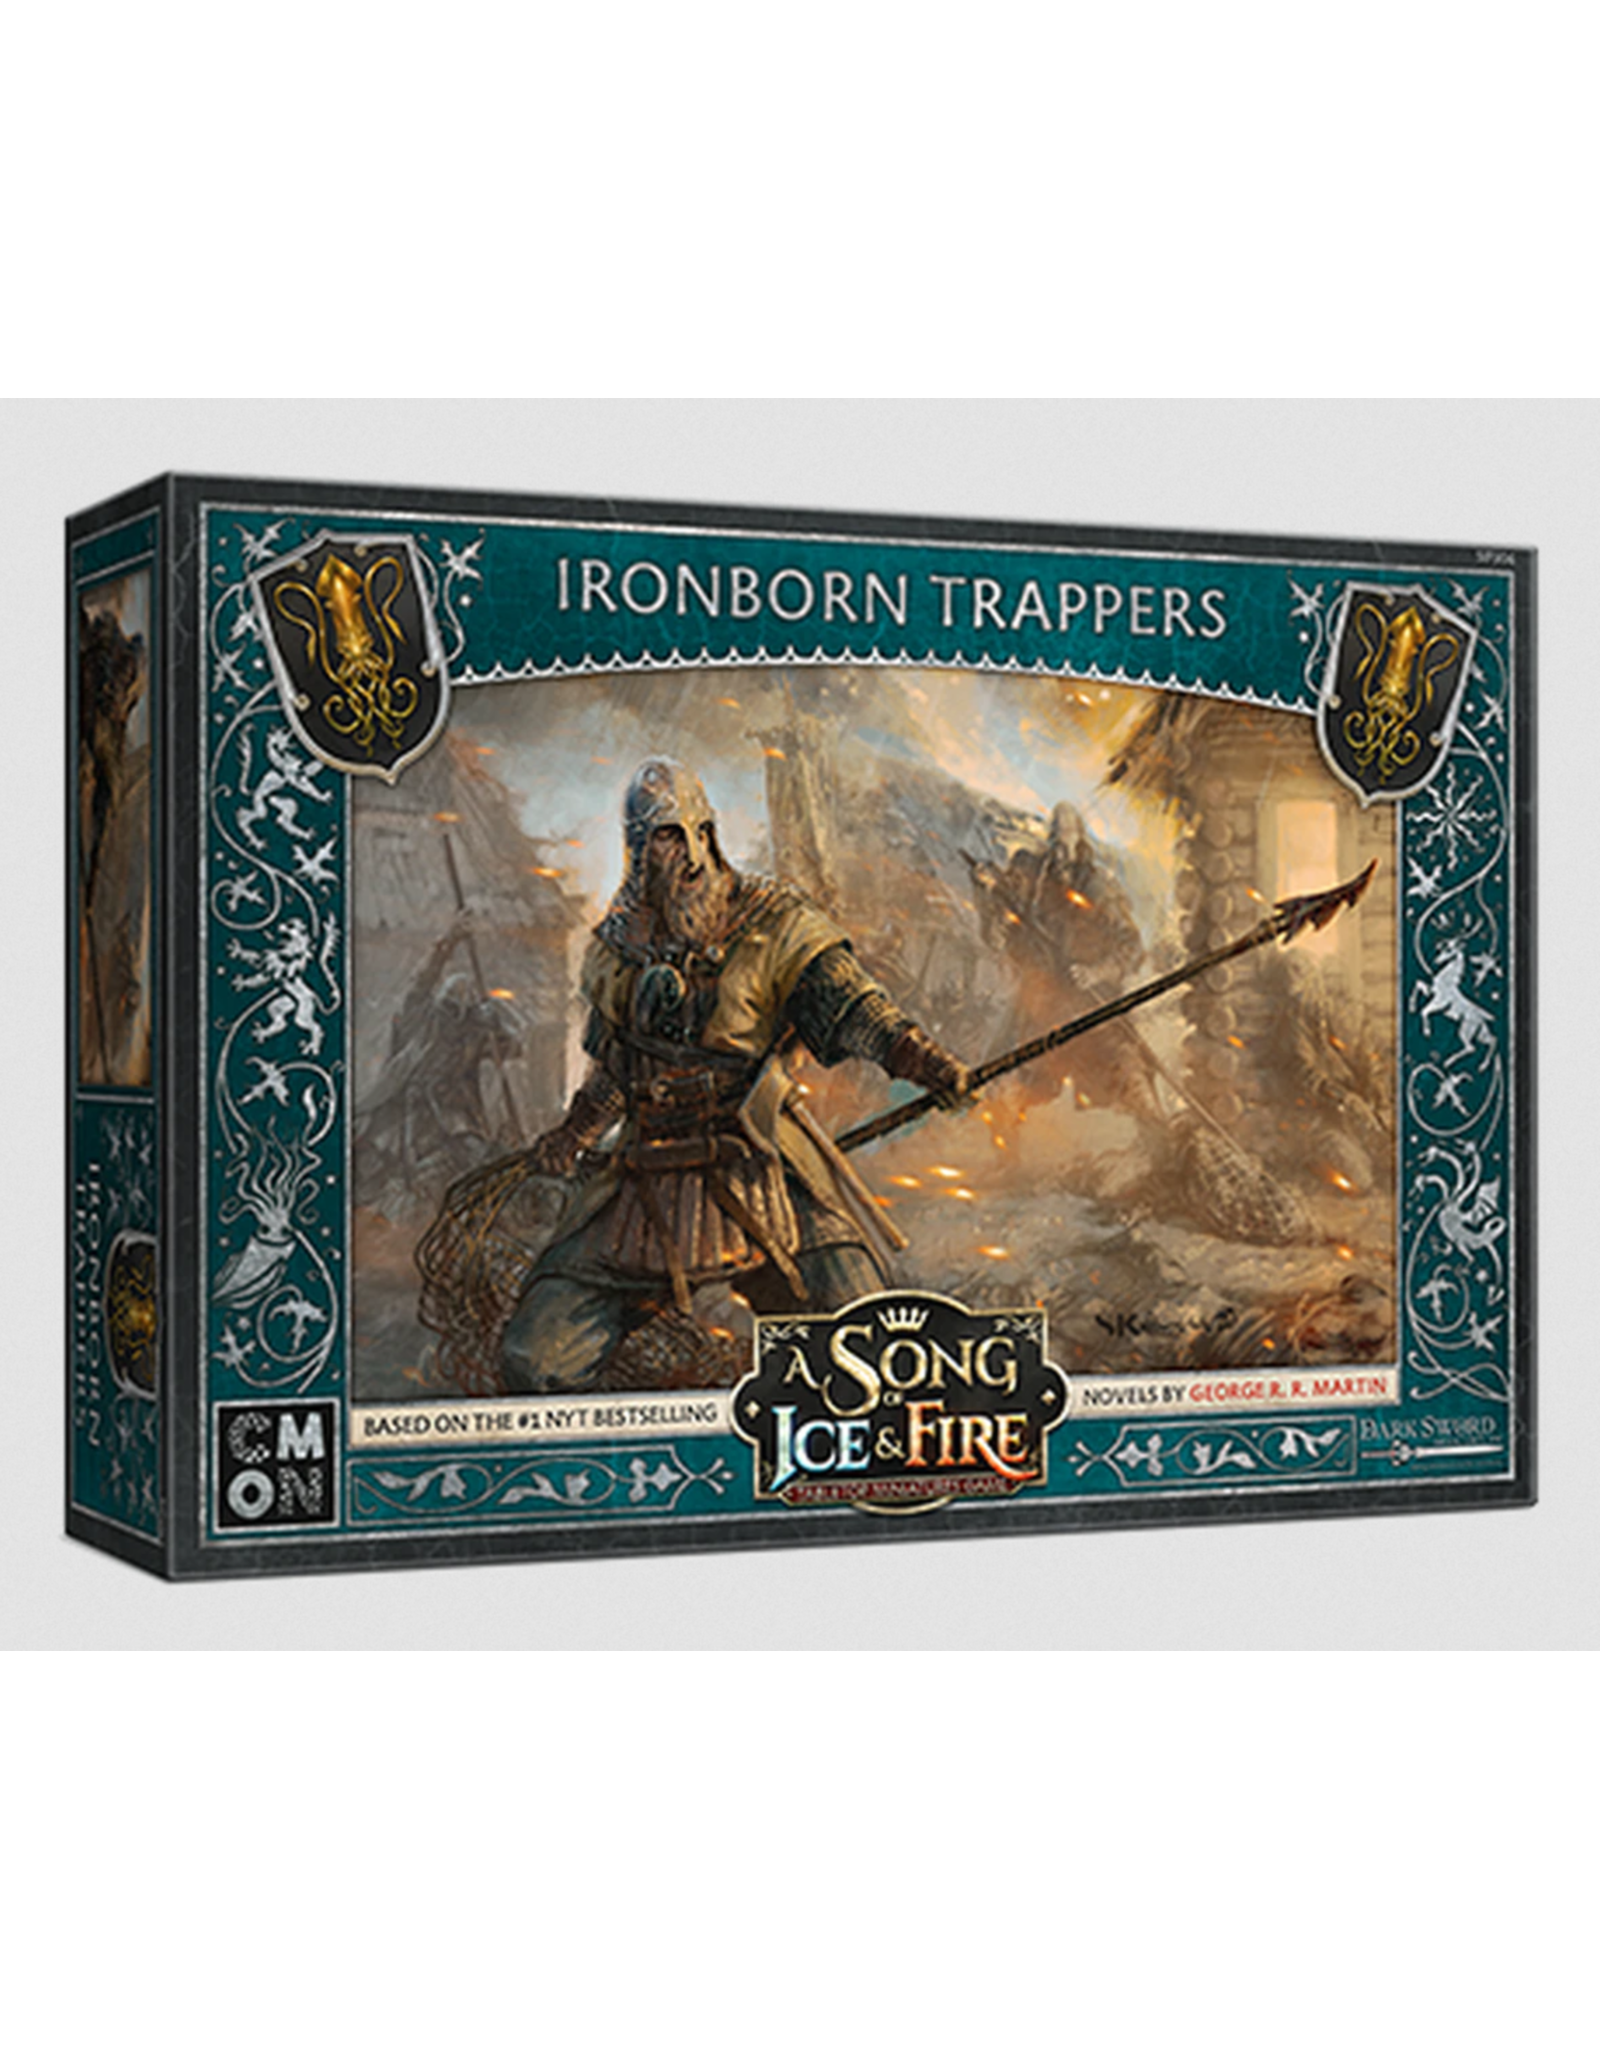 Cool Mini or Not Greyjoy Ironborn Trappers - A Song of Ice & Fire